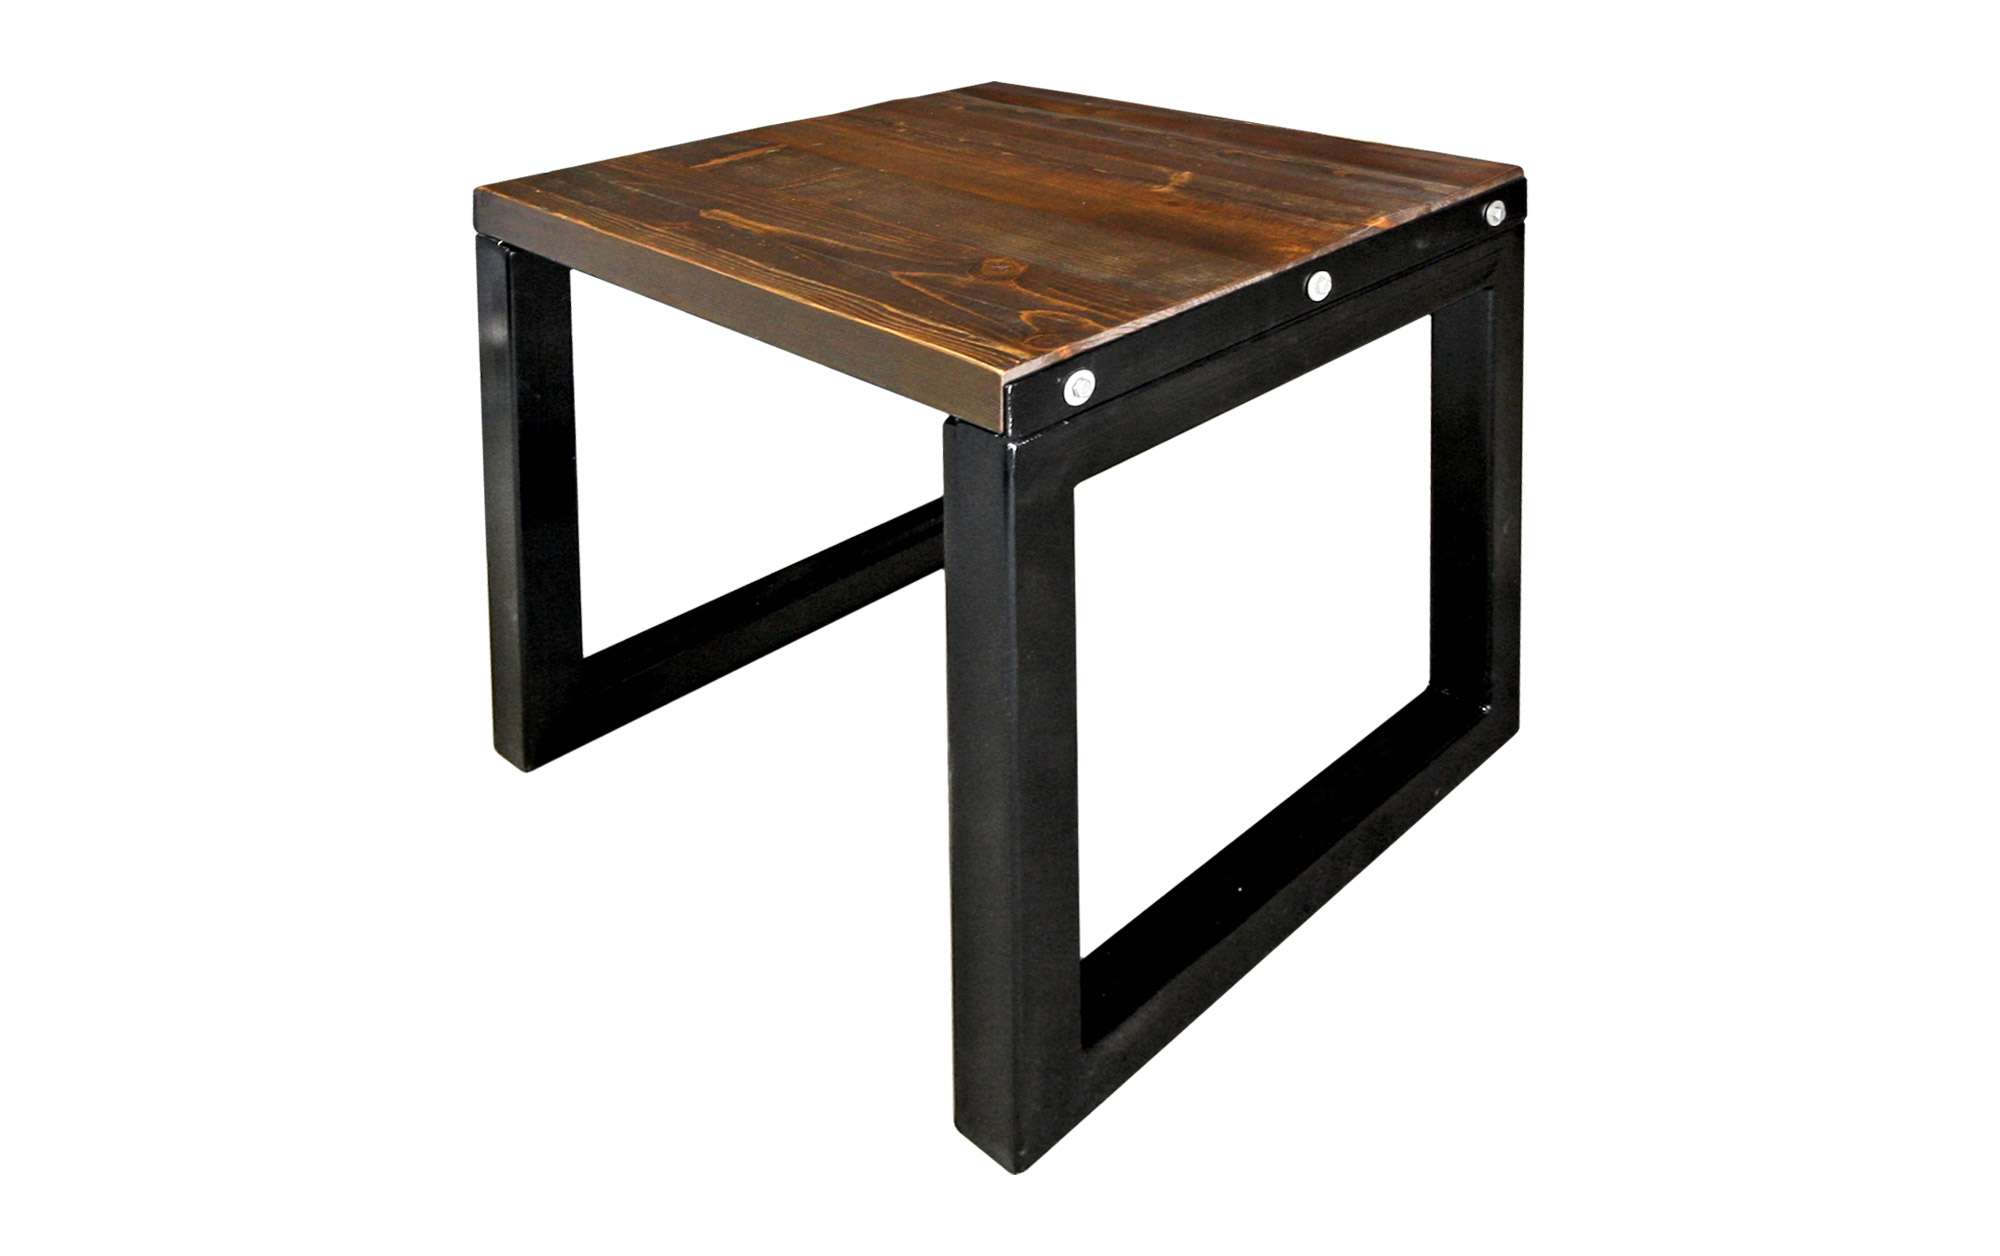 END TABLE BARN WOOD